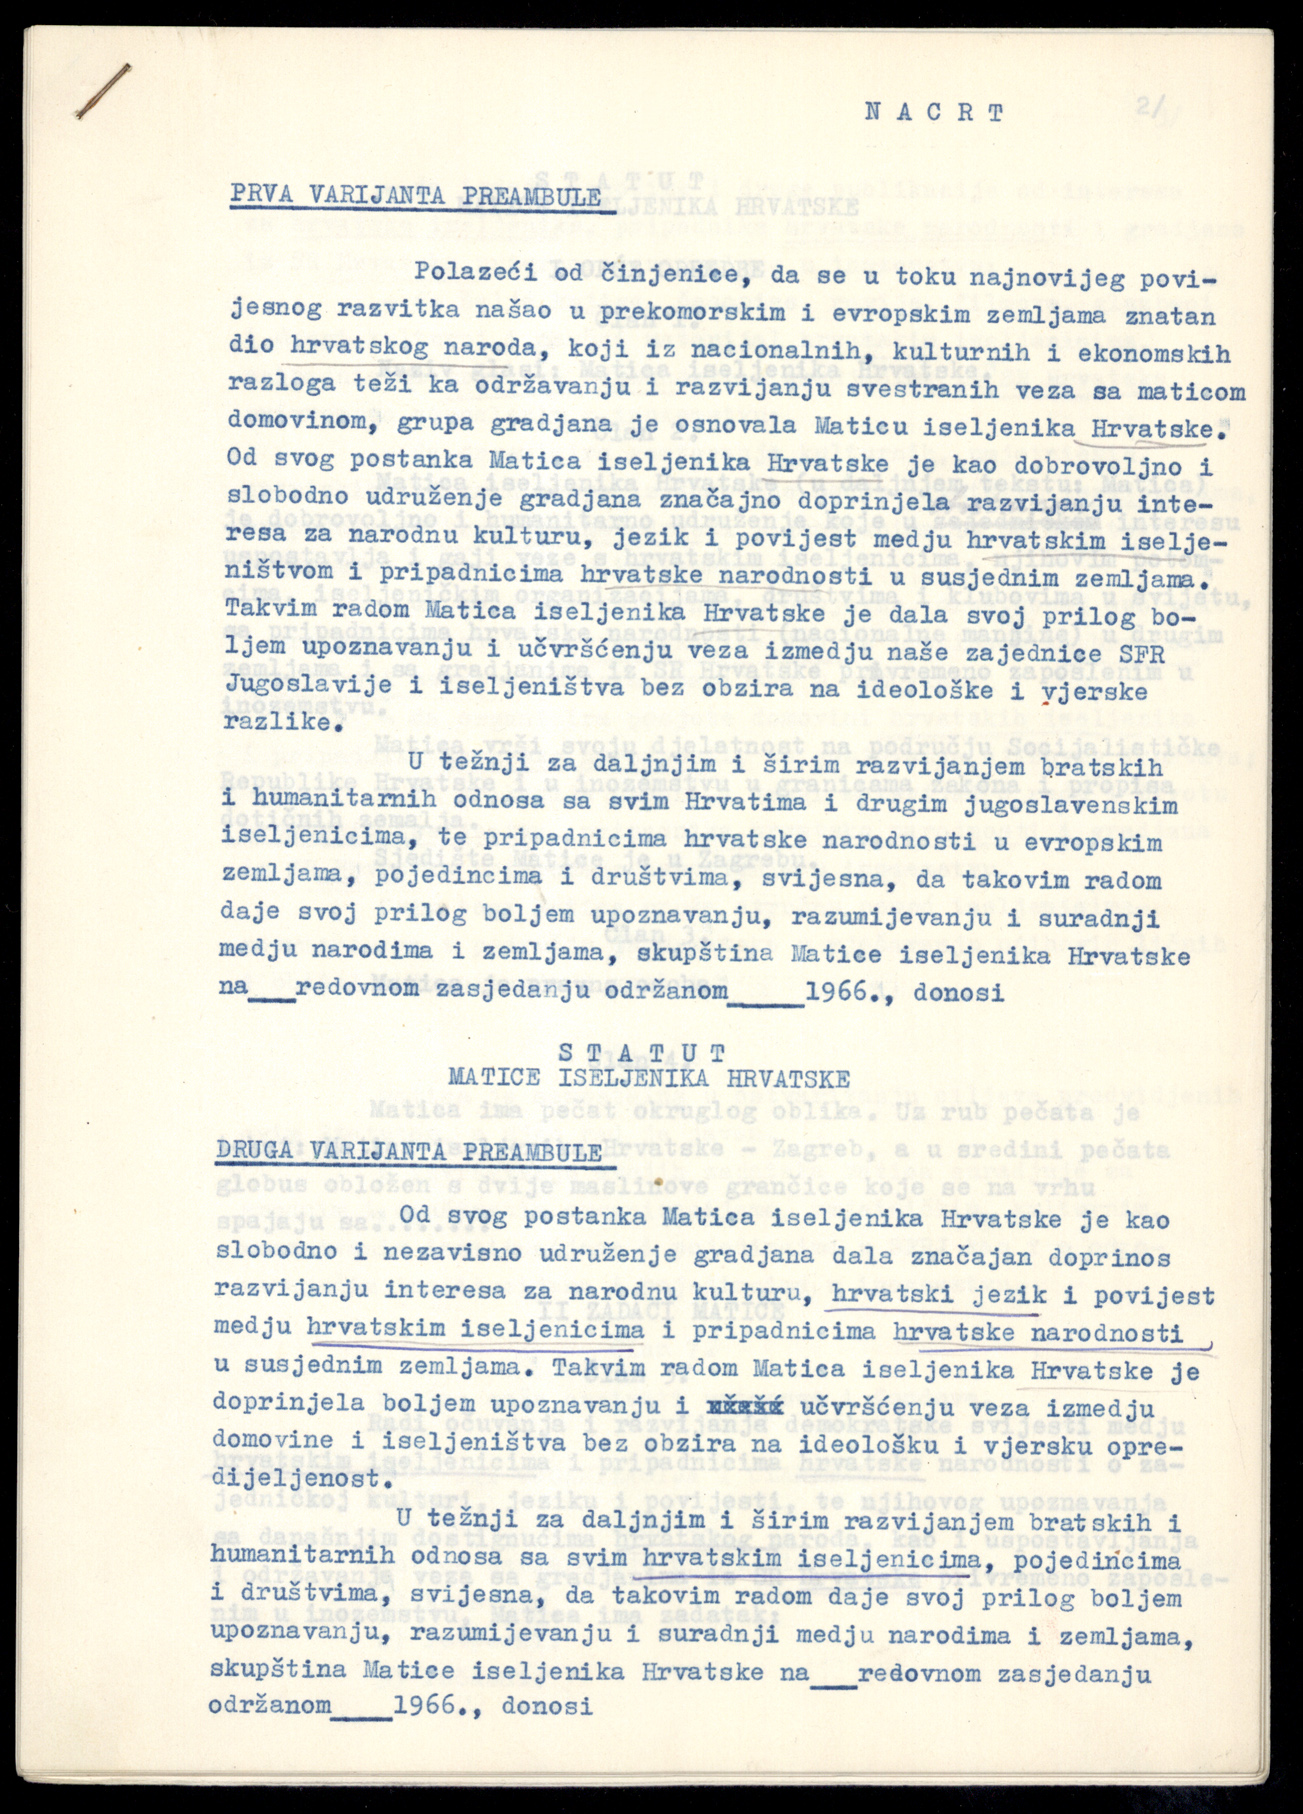 The Emigrant Foundation of Croatia Statute Draft, 1966